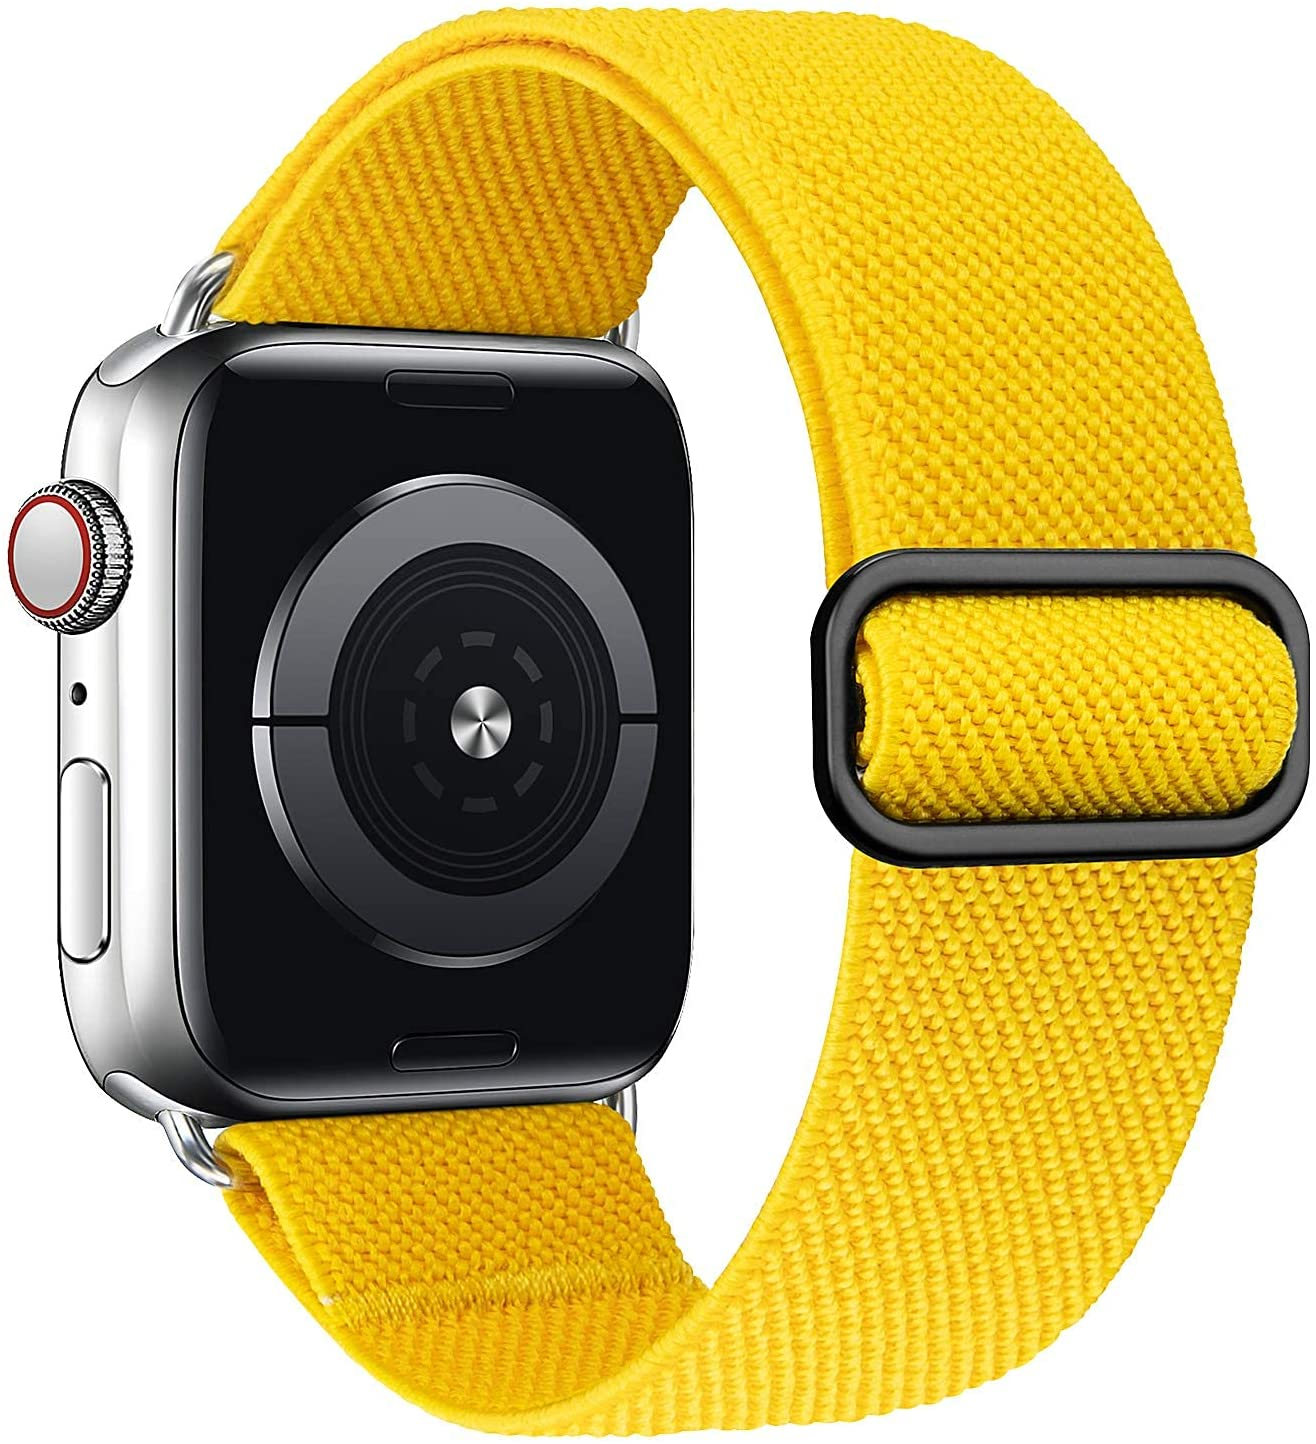 MEULOT Stretchy Braided Solo Loop Band Compatible with Apple Watch Band 38mm 40mm 42mm 44mm Adjustable Nylon Elastic Sport Women Men Strap Compatible with iWatch Series 6/5/4/3/2/1 SE Yellow 38/40S